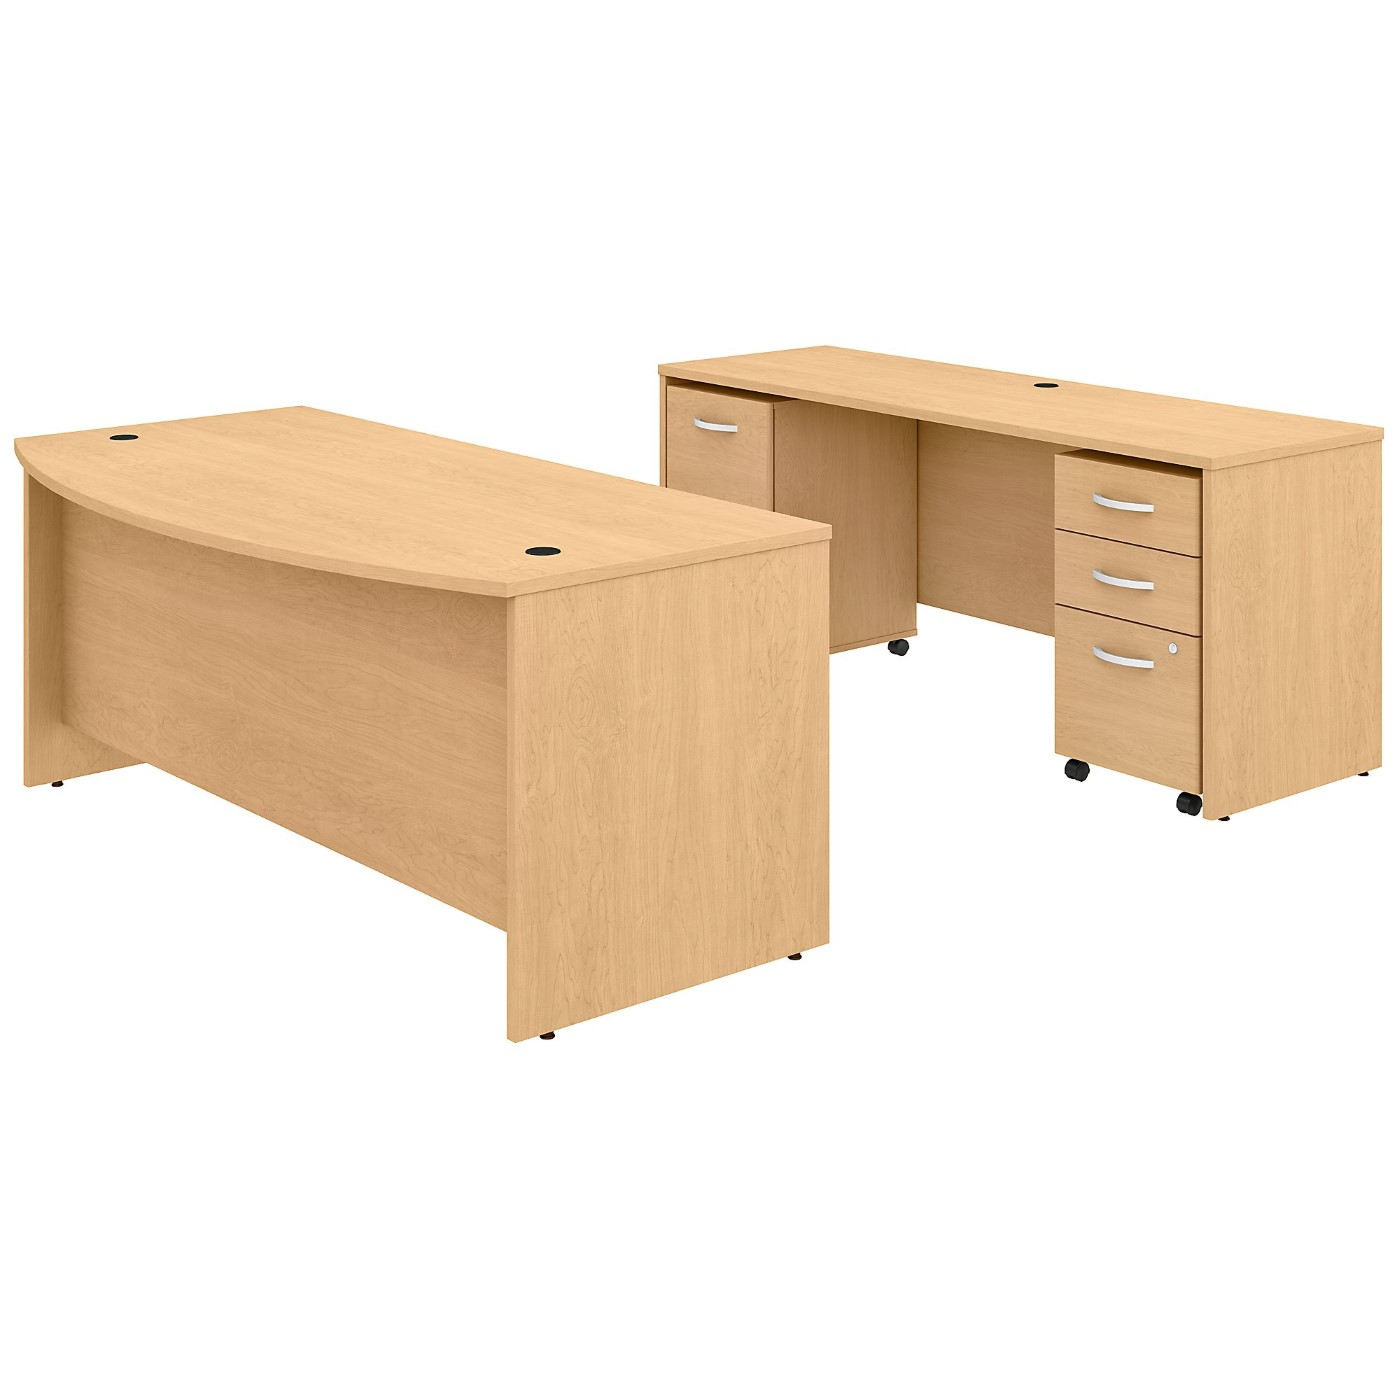 BUSH BUSINESS FURNITURE STUDIO C 72W X 36D BOW FRONT DESK AND CREDENZA WITH MOBILE FILE CABINETS. FREE SHIPPING